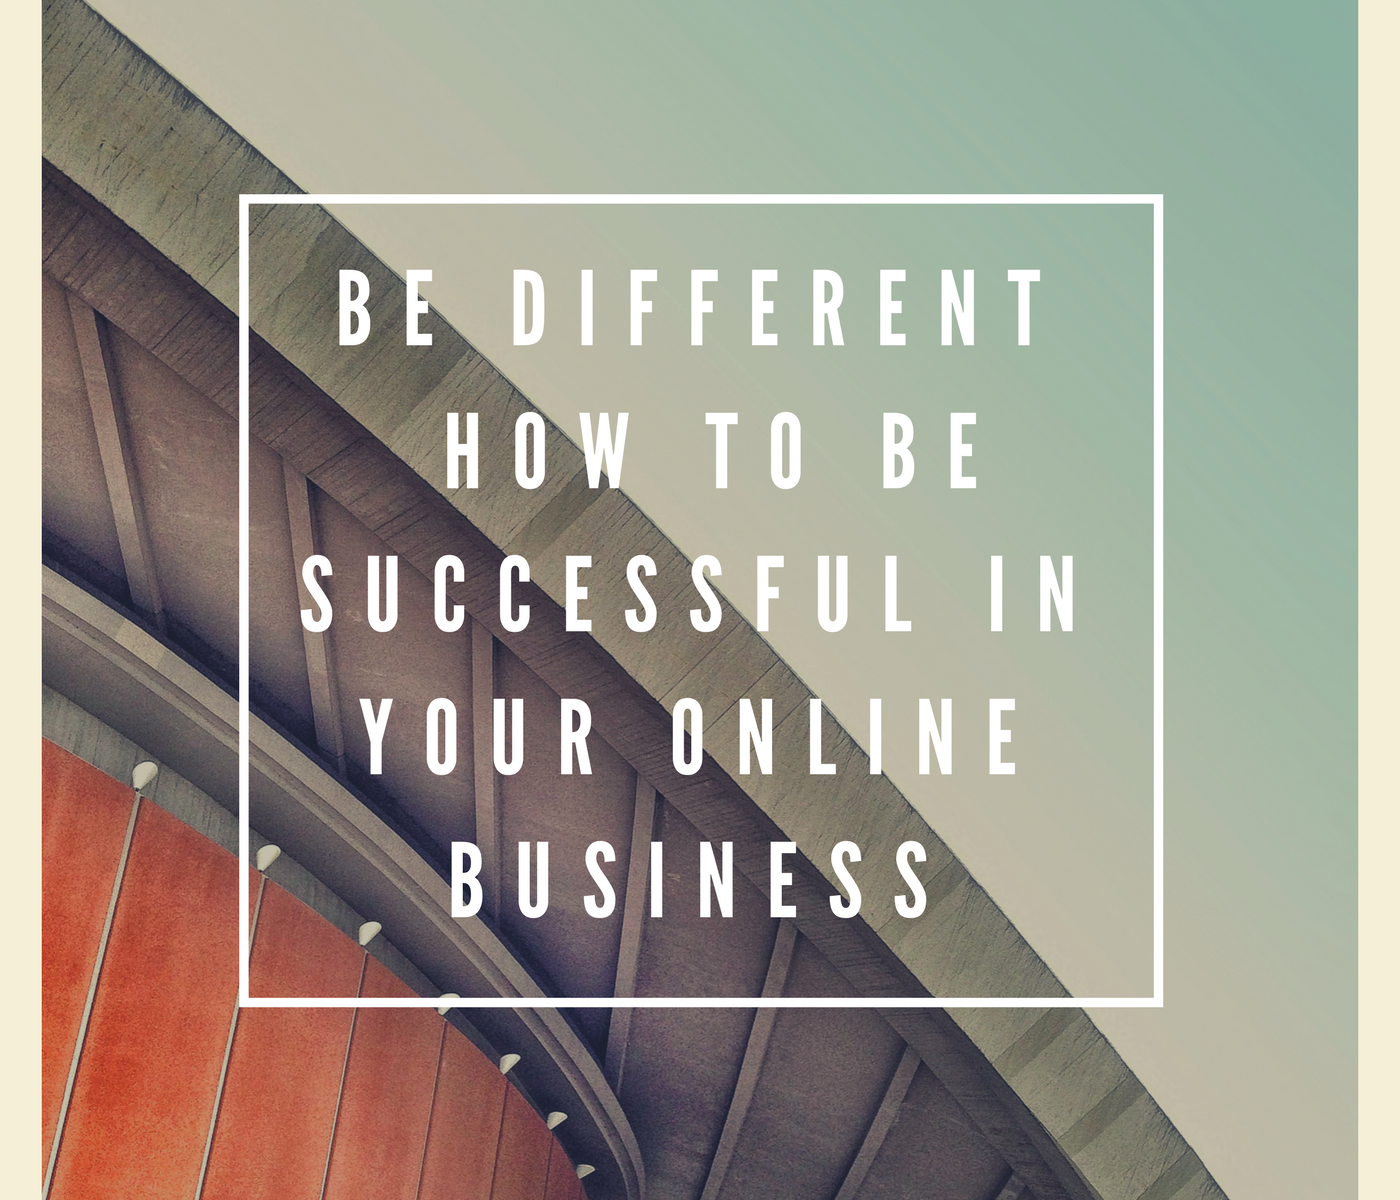 Be Different – How to Be Successful in Your Online Business